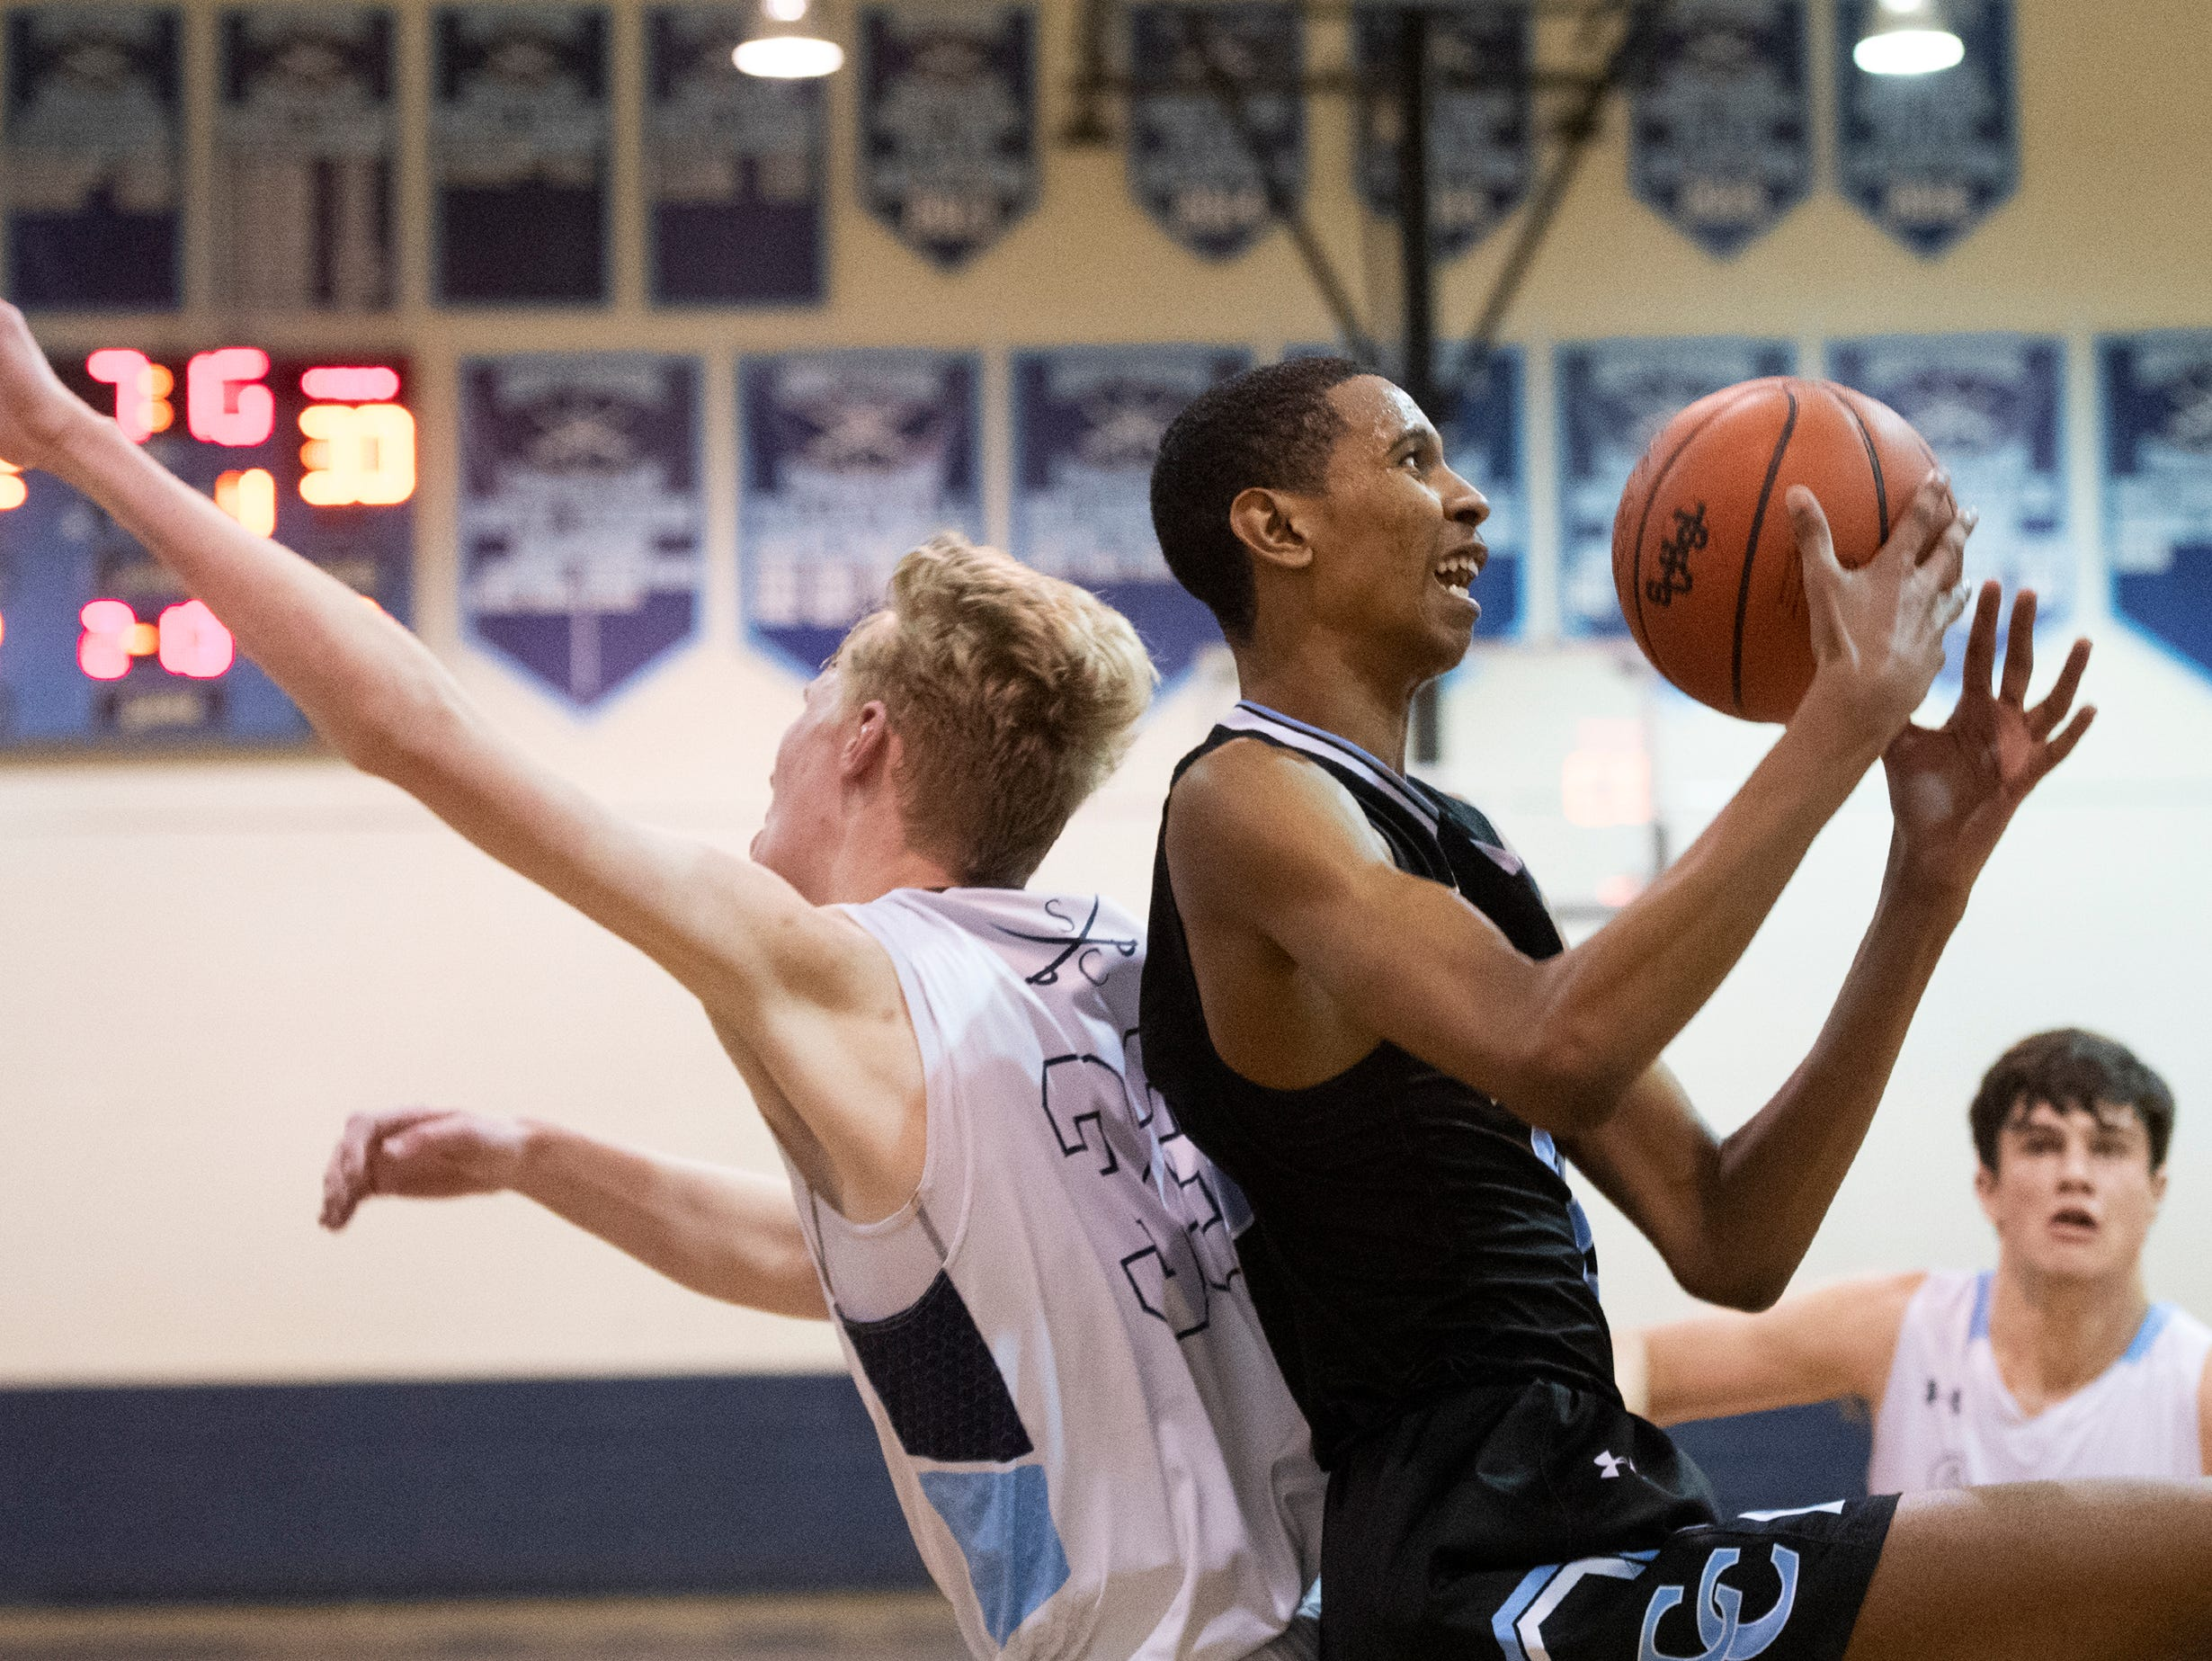 Christ Church Episcopal School's John Butler (13) has the ball after competing with Southside Christian High School's Ian Thomson (33) for a rebound at Southside Christian High School Tuesday, Feb. 5, 2019.